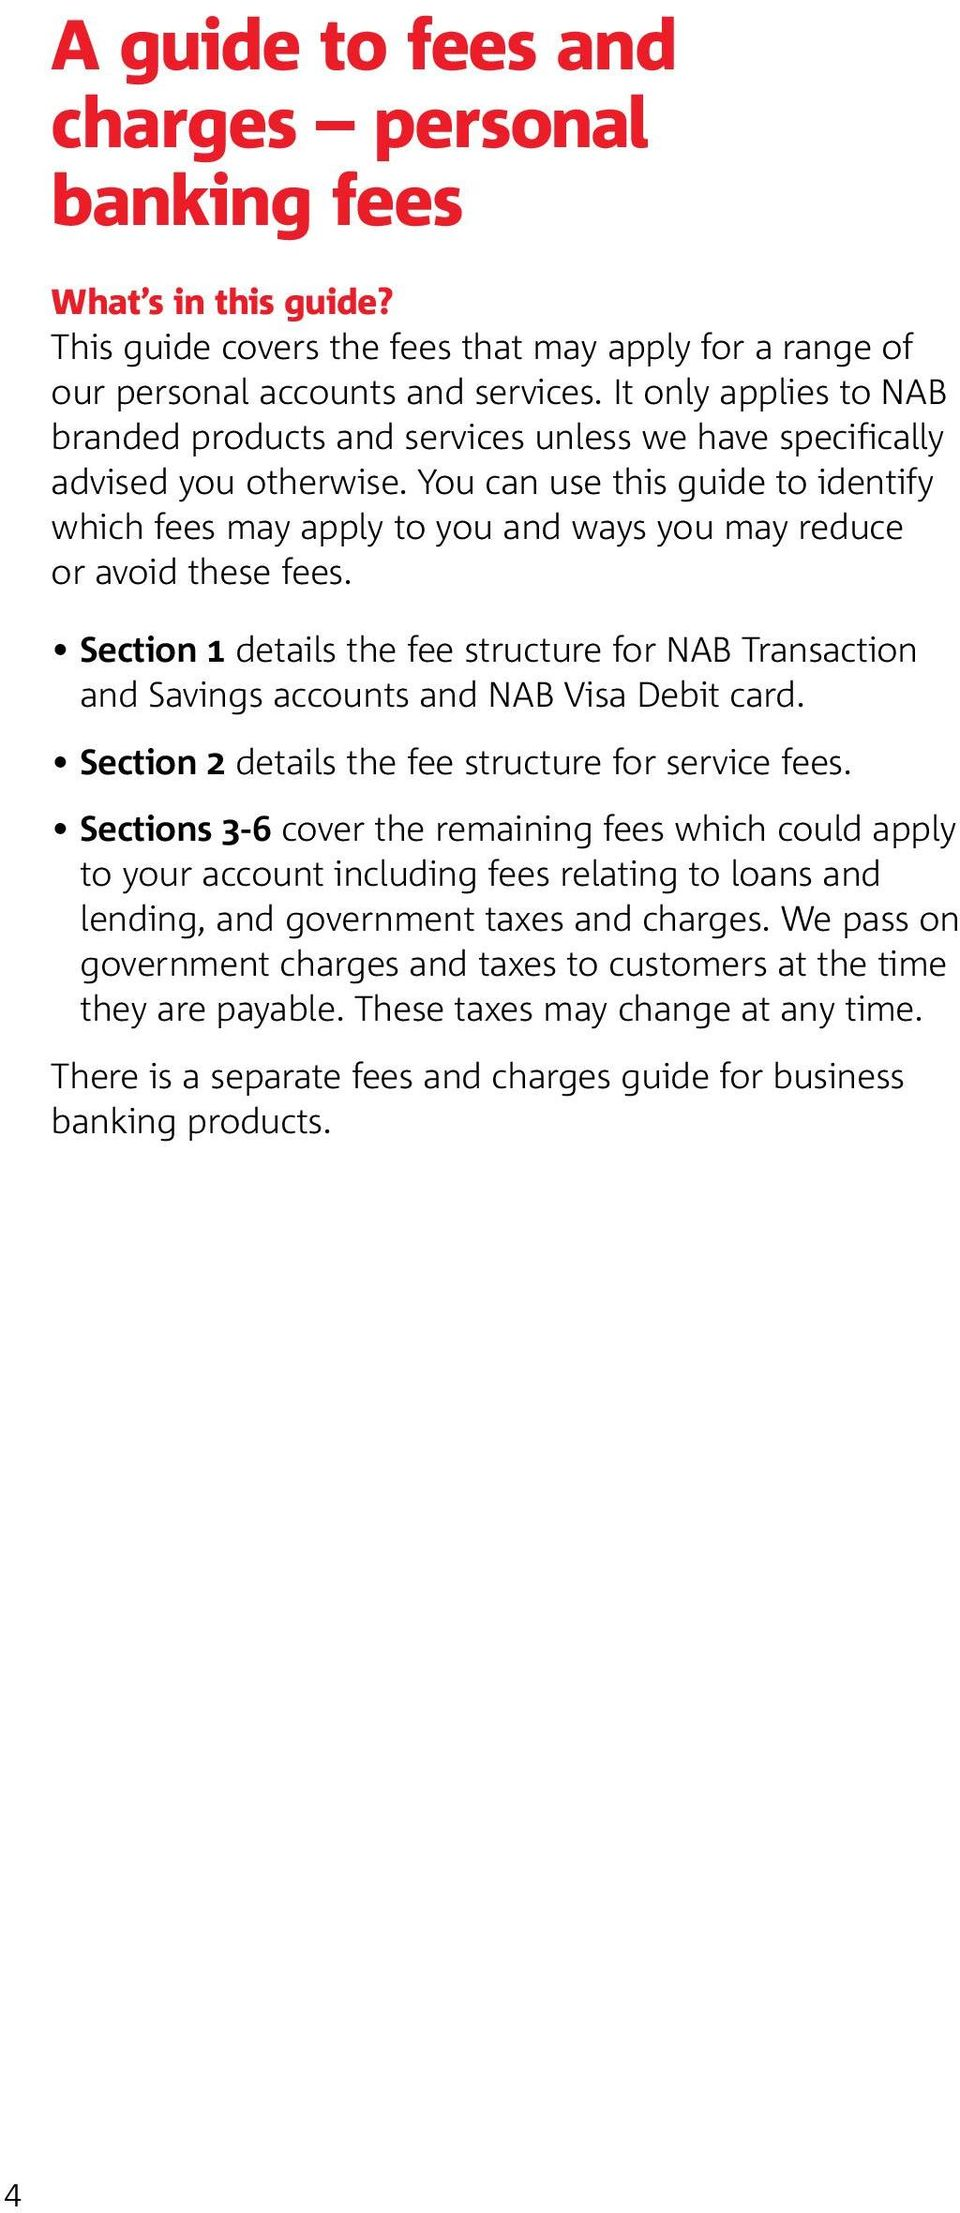 You can use this guide to identify which fees may apply to you and ways you may reduce or avoid these fees.